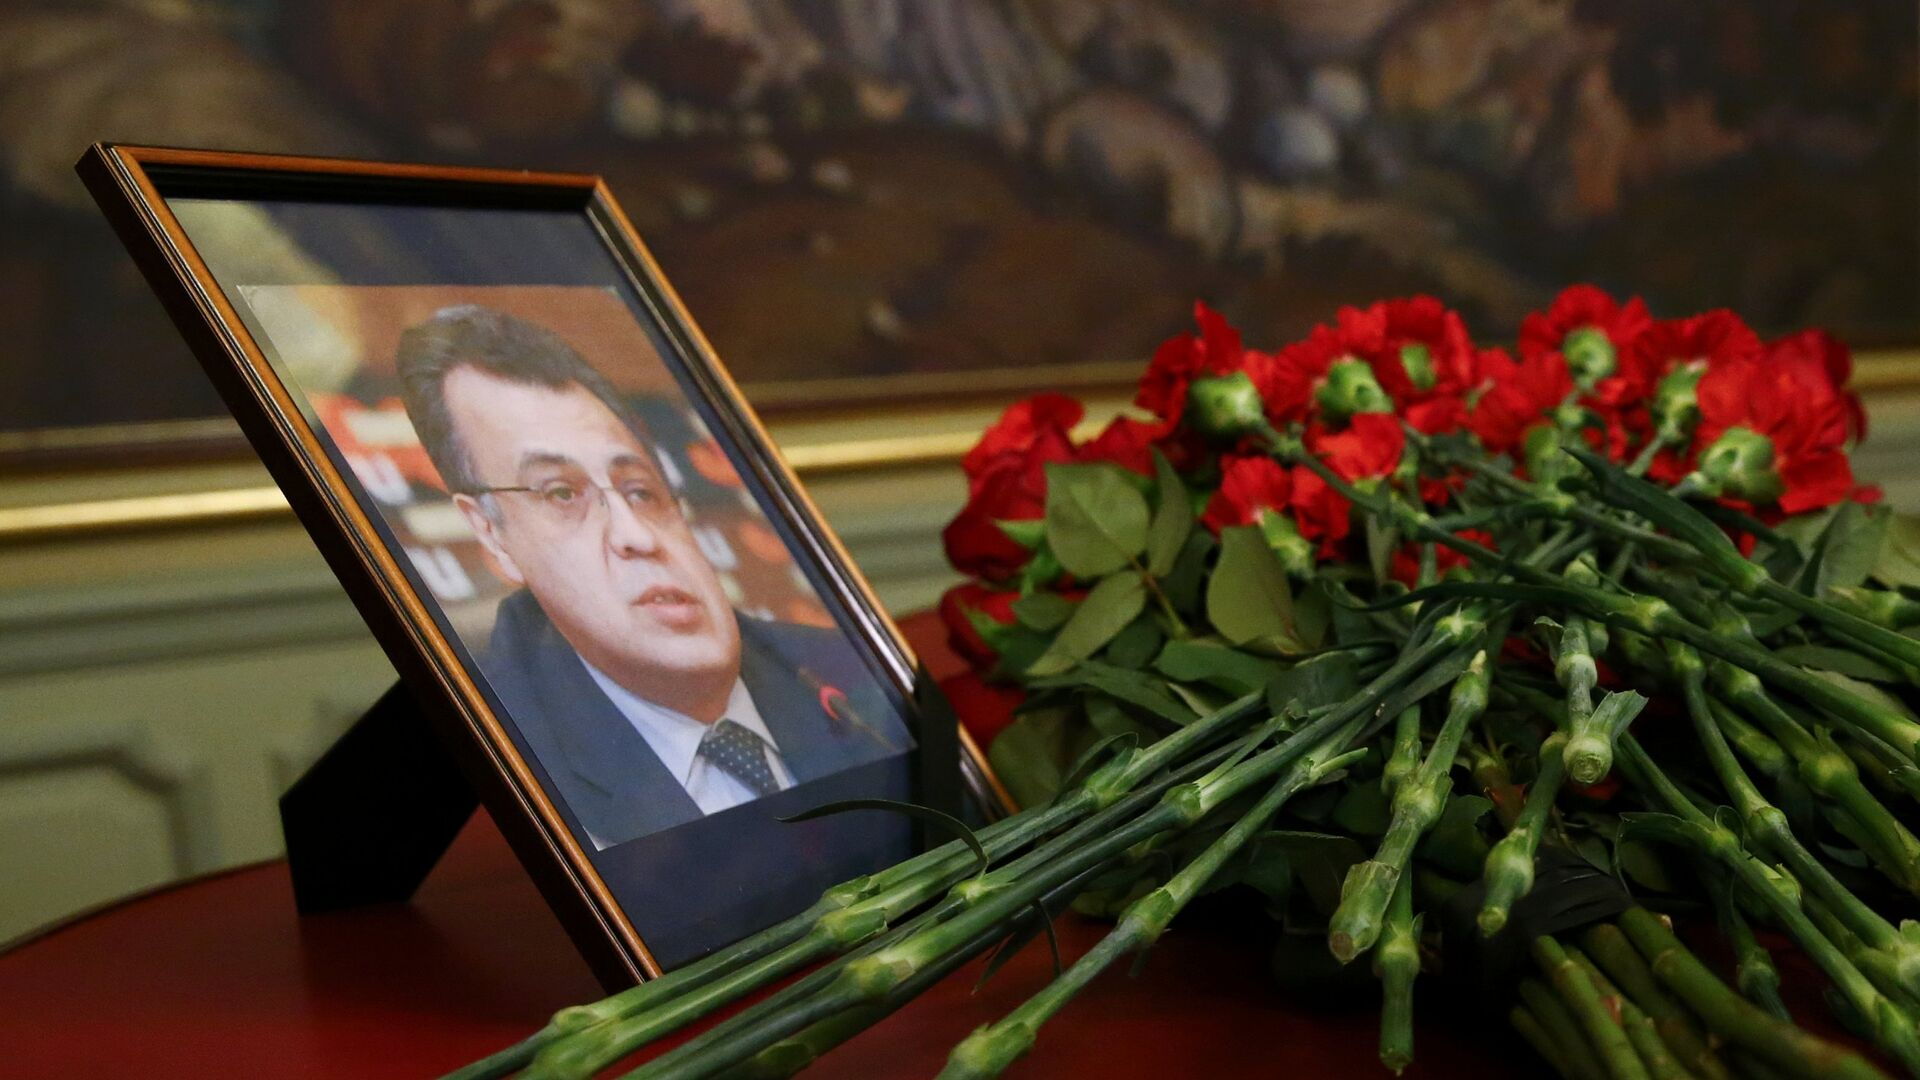 Flowers are placed near a portrait of murdered Russian ambassador to Turkey Karlov during a meeting of Russian Foreign Minister Lavrov with his Turkish counterpart Cavusoglu in Moscow - Sputnik Mundo, 1920, 09.03.2021